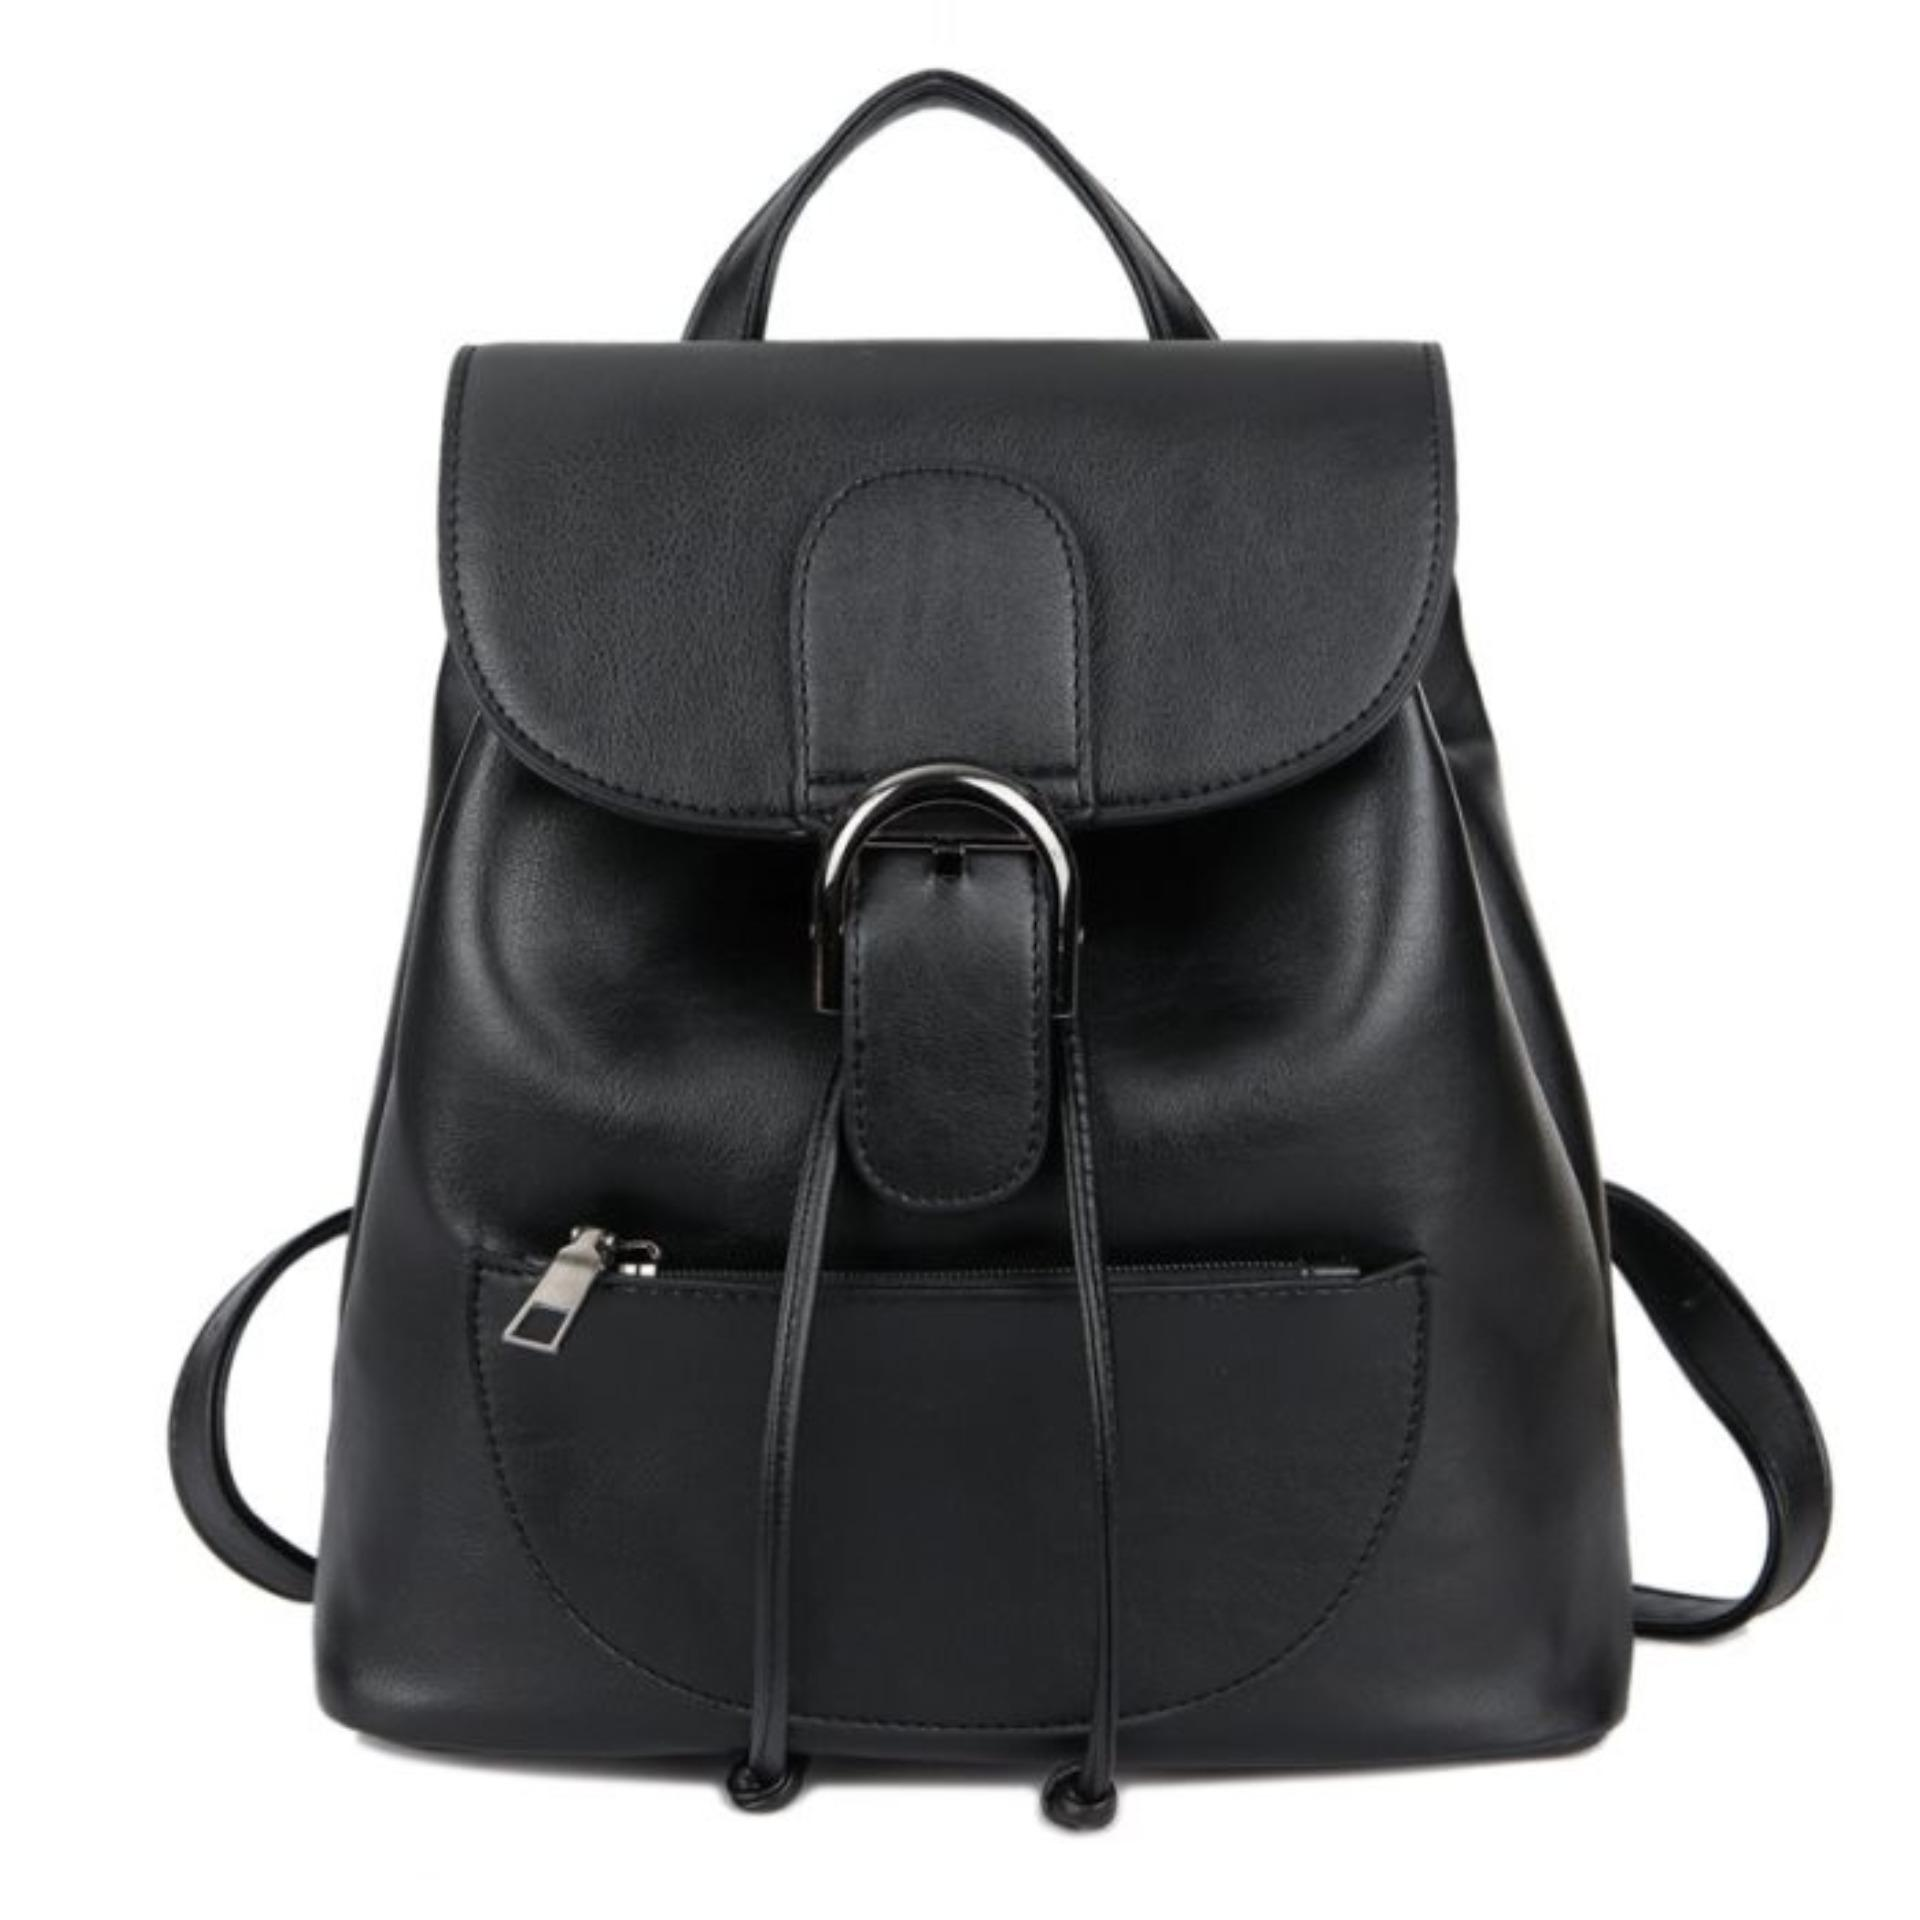 KGS Tas Ransel Mini Backpack Wanita Casual Buckled Flap Hitam